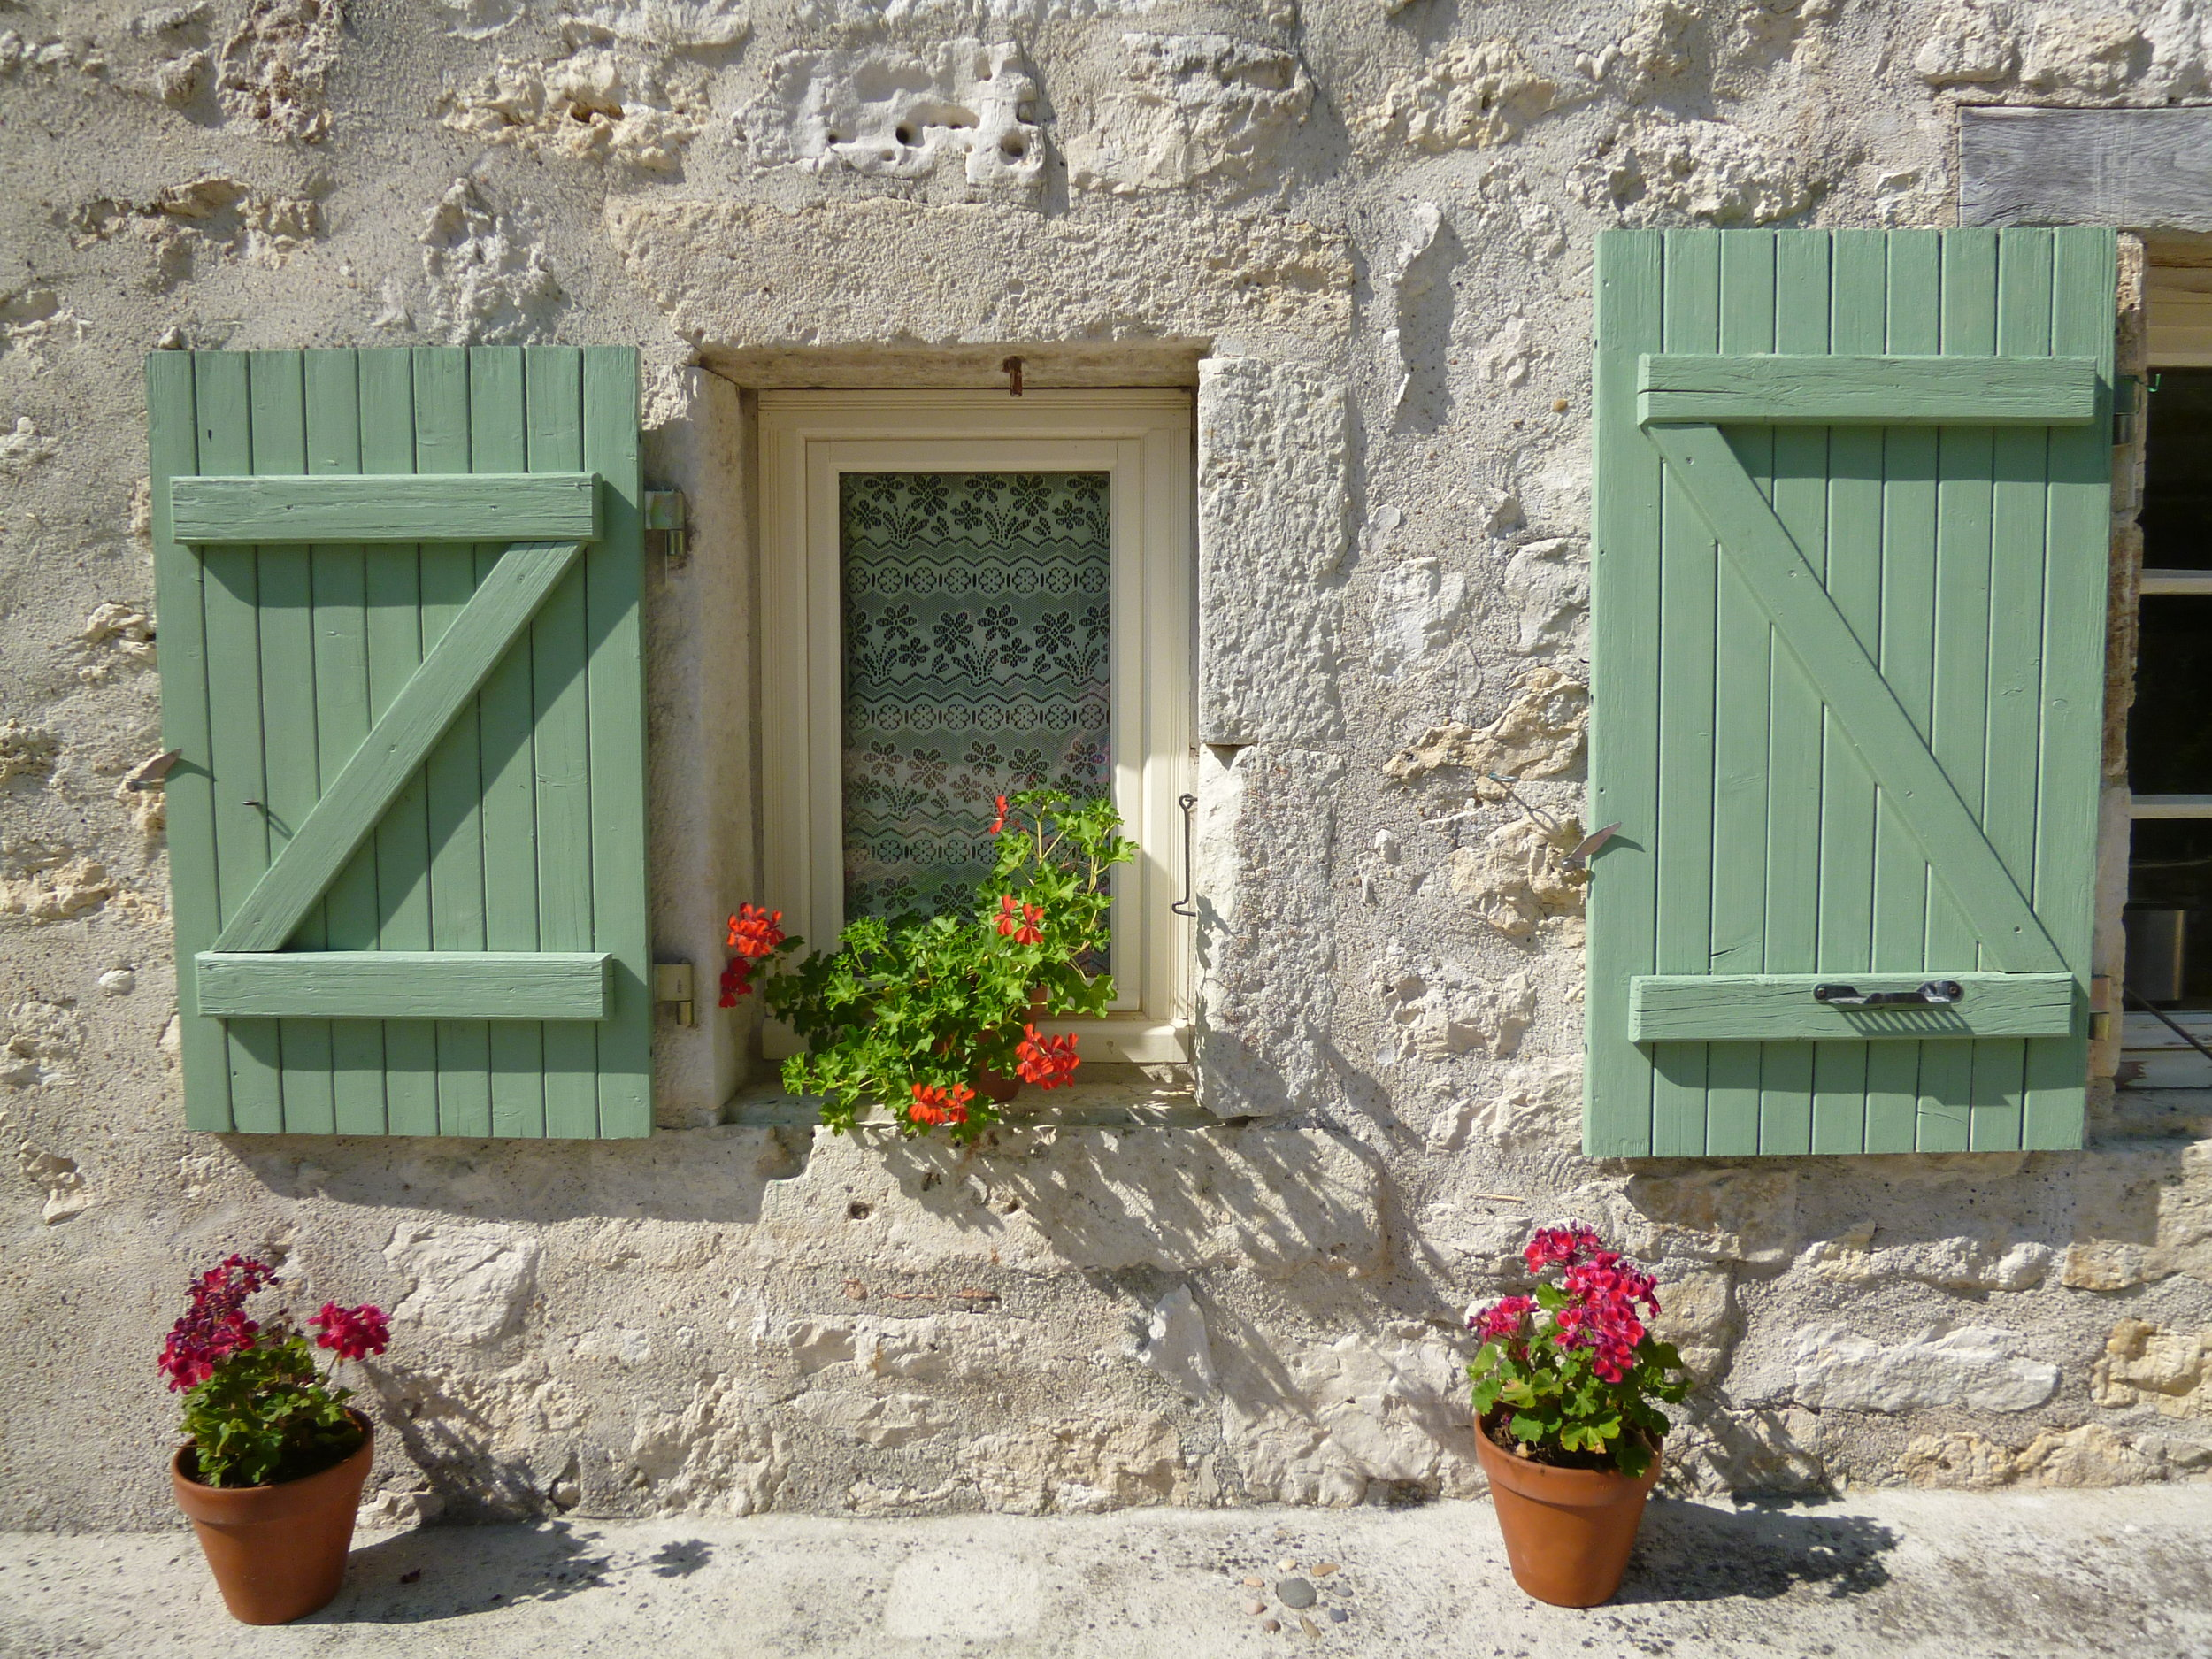 Geraniums and shutters.